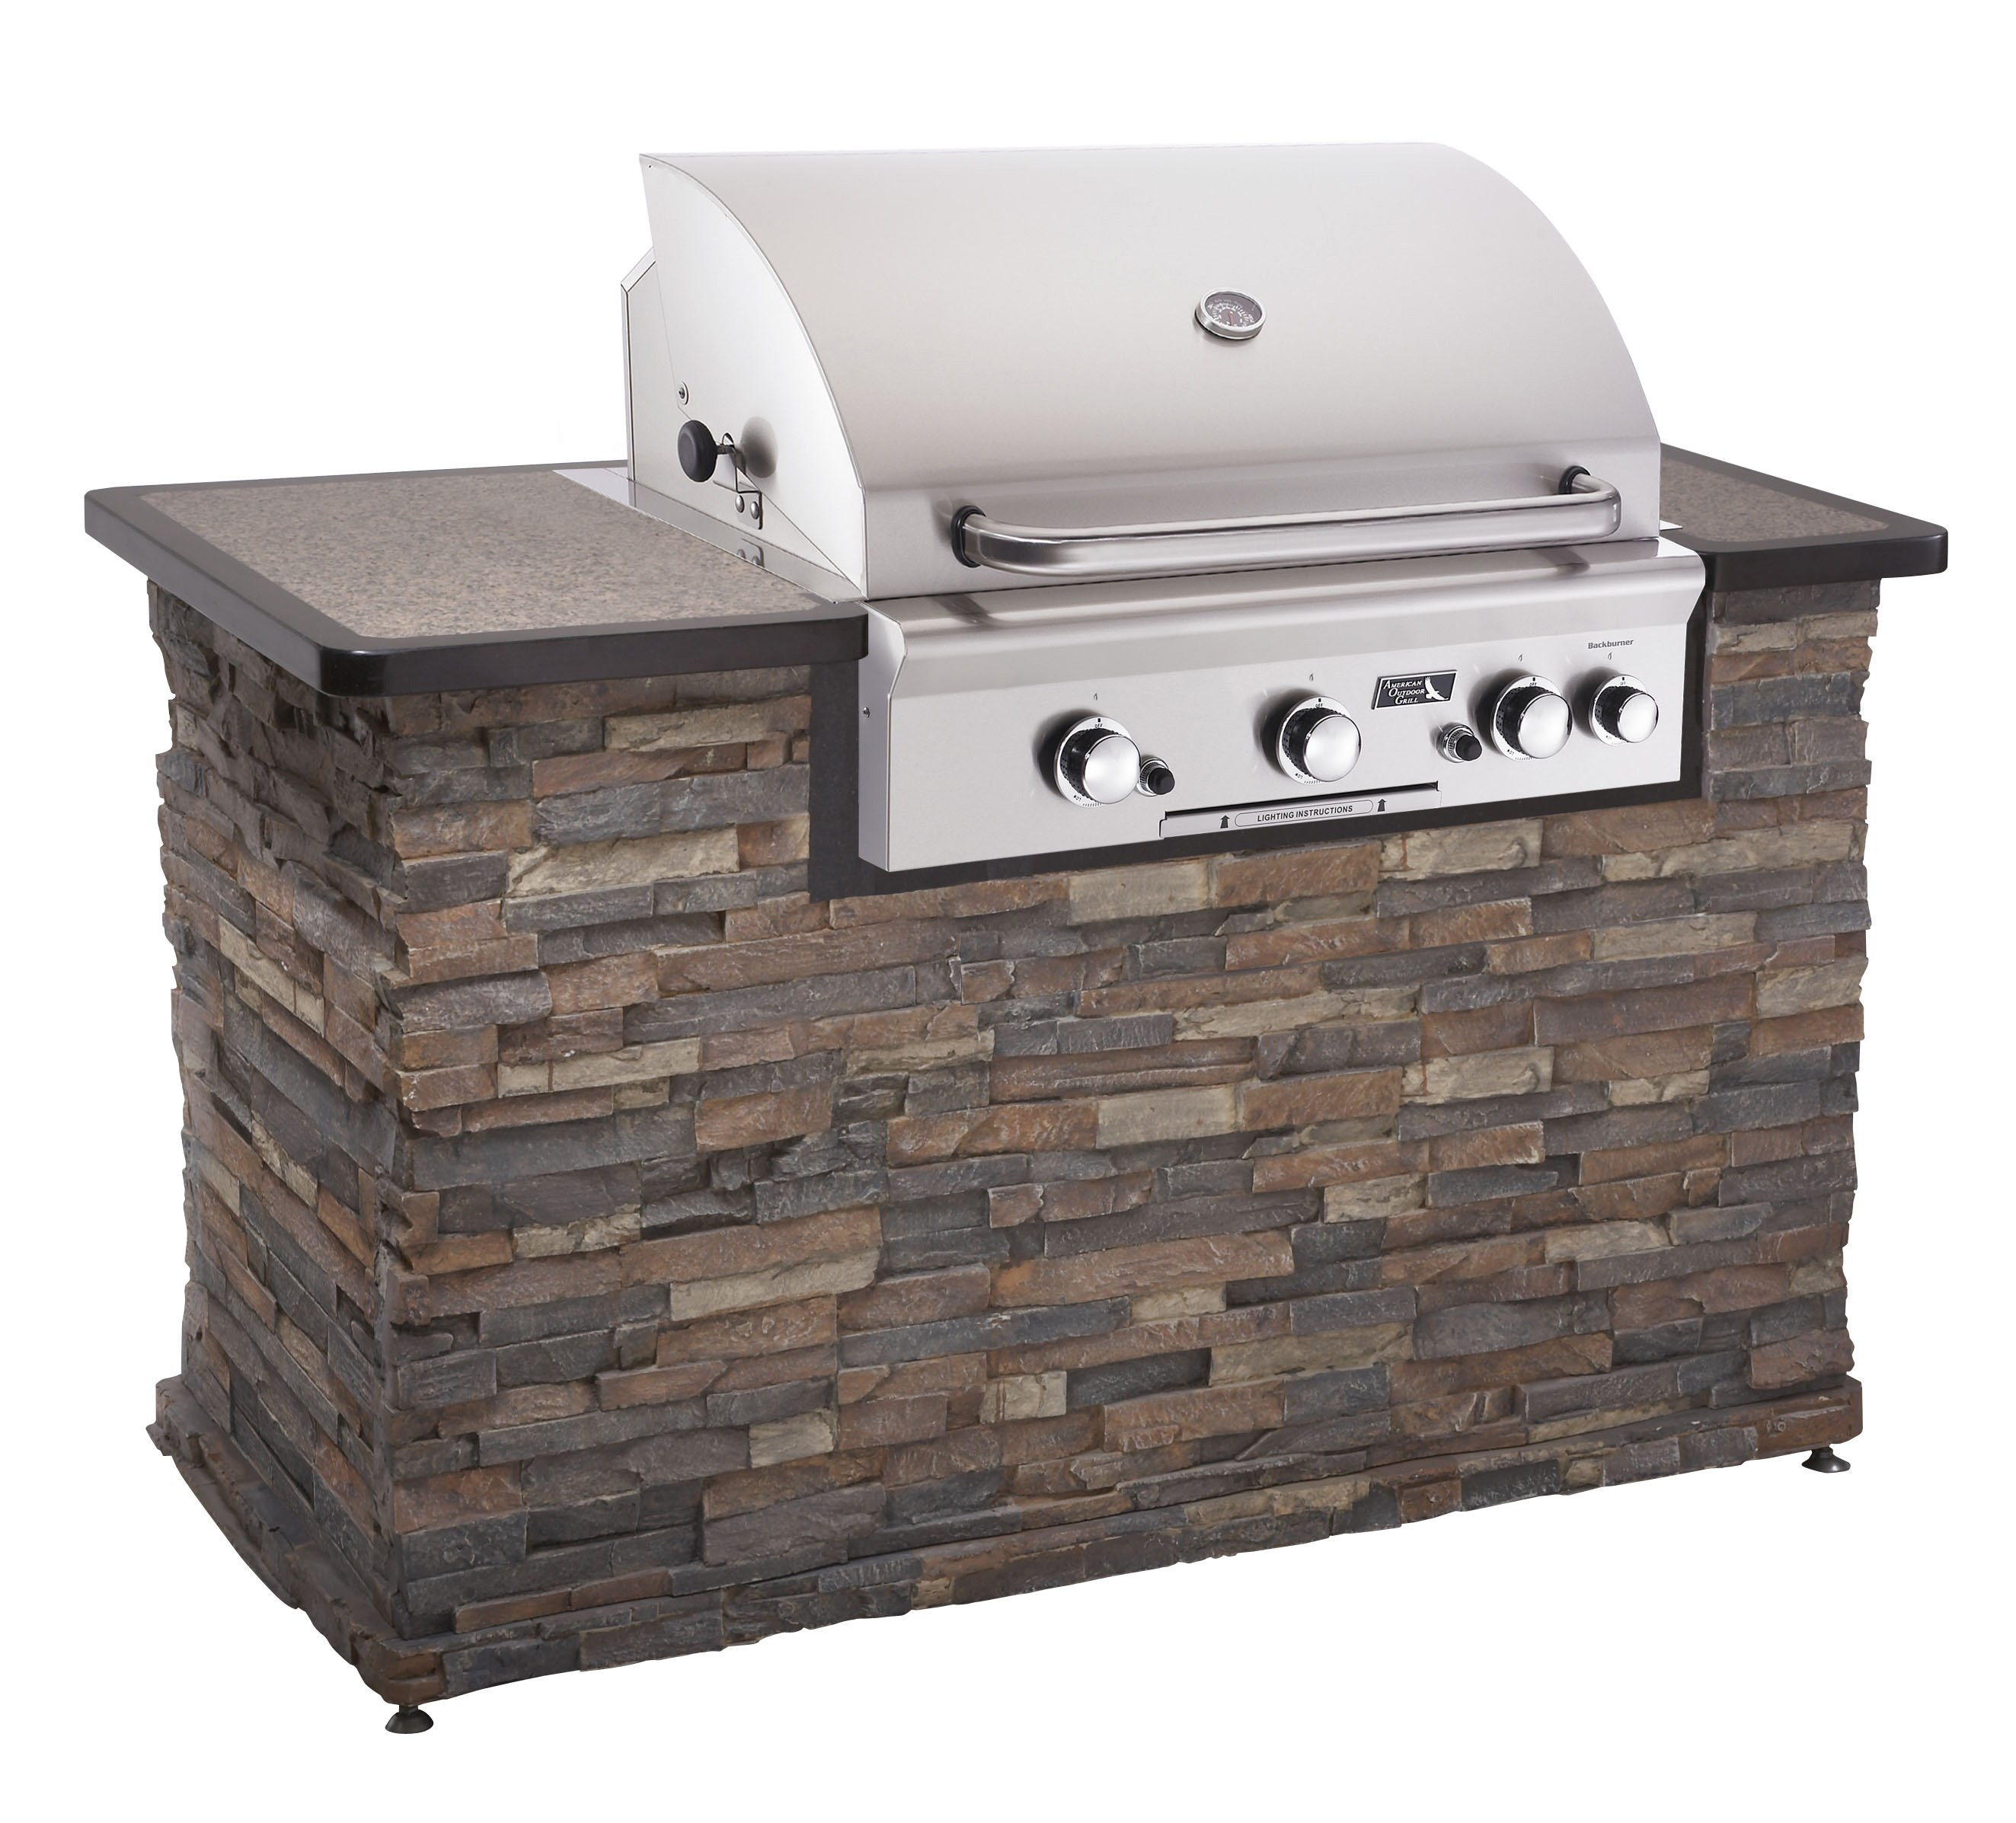 "American Outdoor Grill 36"" built in Coastroad line"